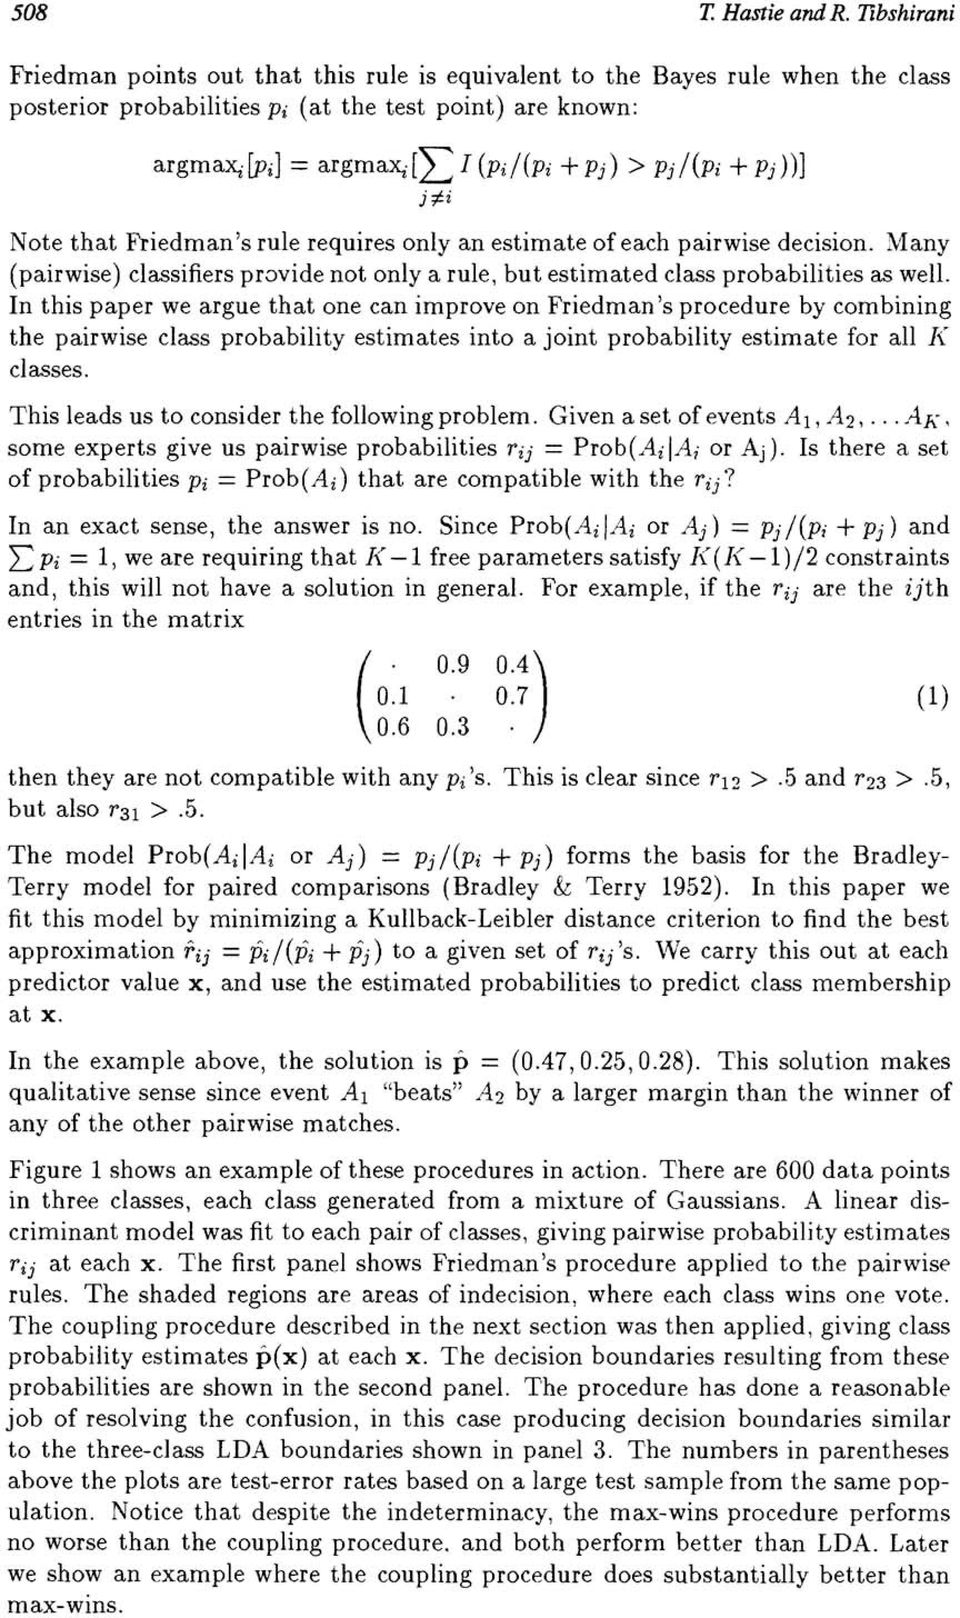 Jti Note that Friedman's rule requires only an estimate of each pairwise decision. Many (pairwise) classifiers provide not only a rule, but estimated class probabilities as well.